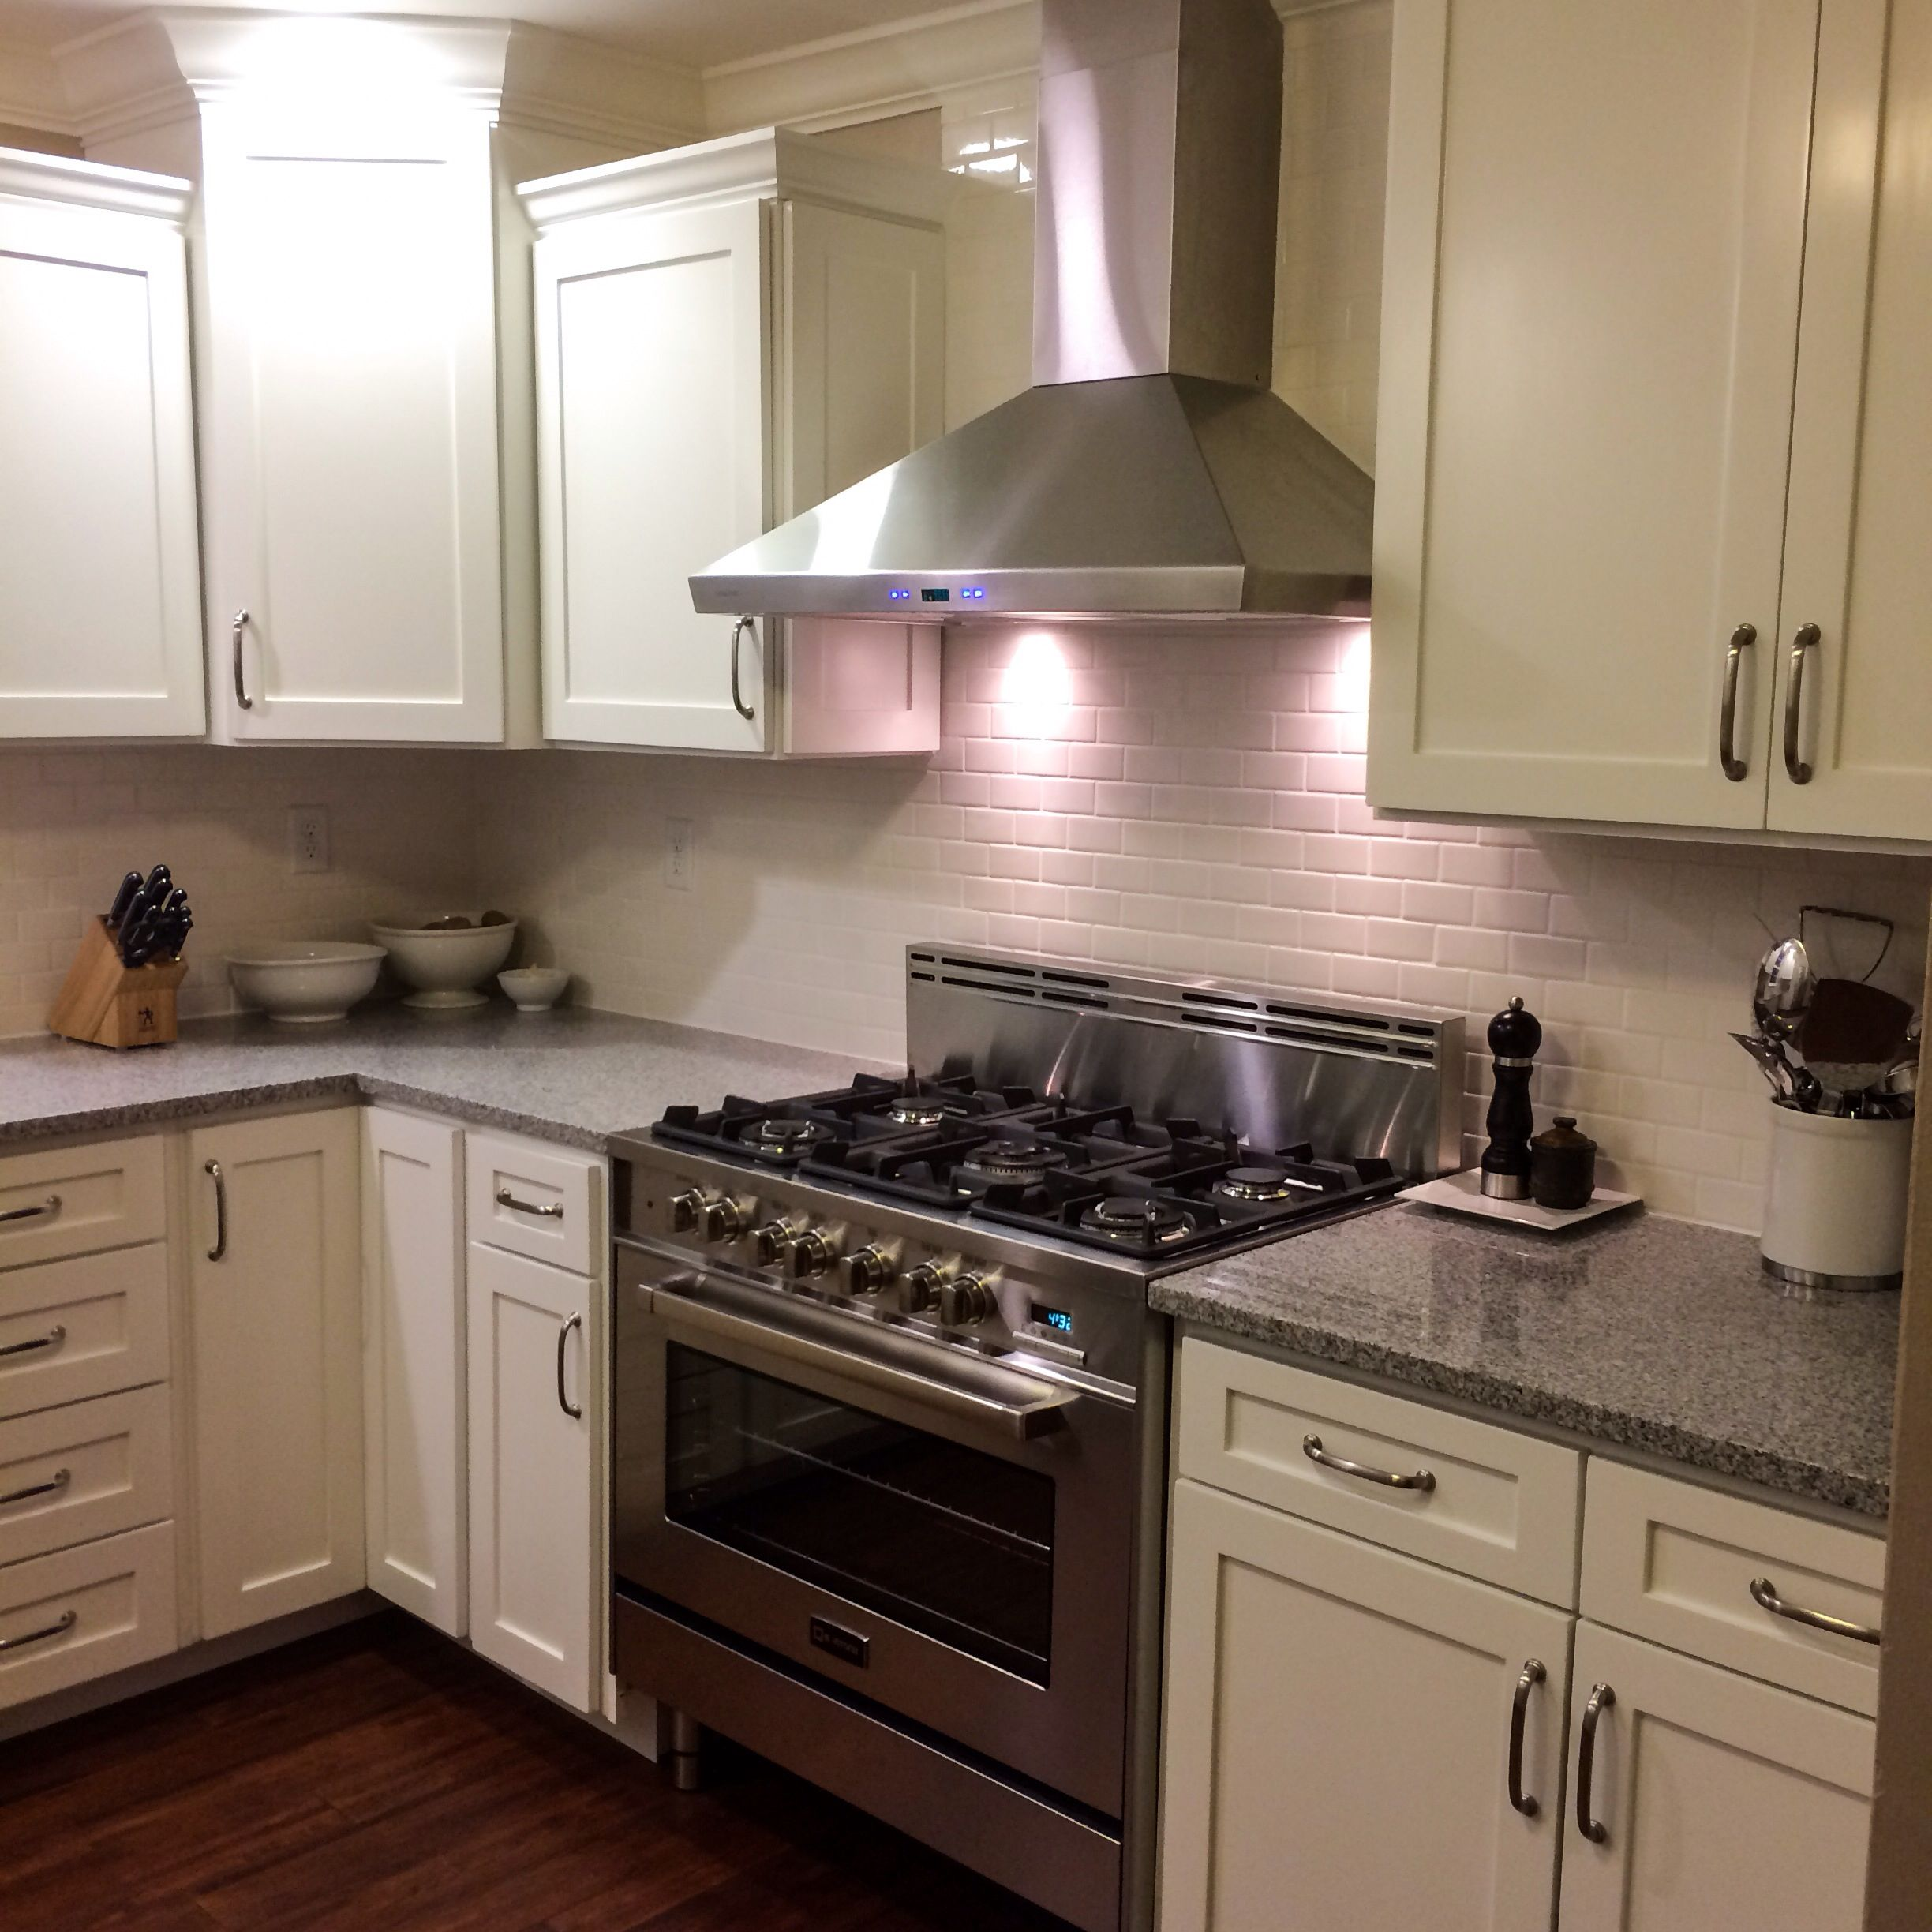 Cooks Brand Kitchen Appliances My White Classic Kitchen Remodel With My New Italian Verona Range